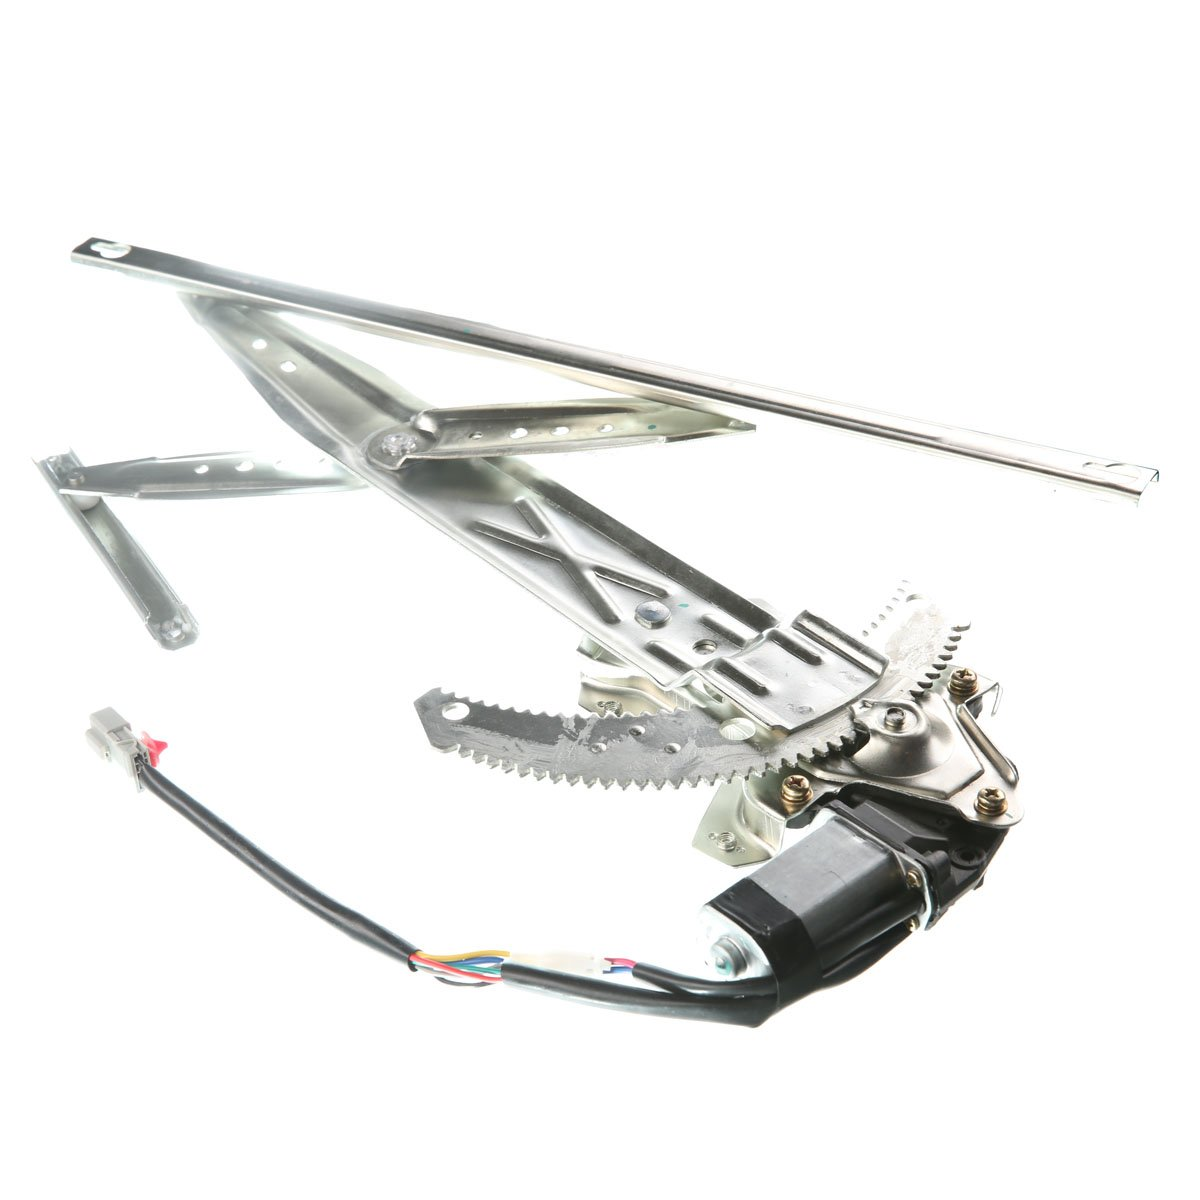 Set of 2 Front Left and Right Power Window Regulator with Motor for Honda Civic 1996-2000